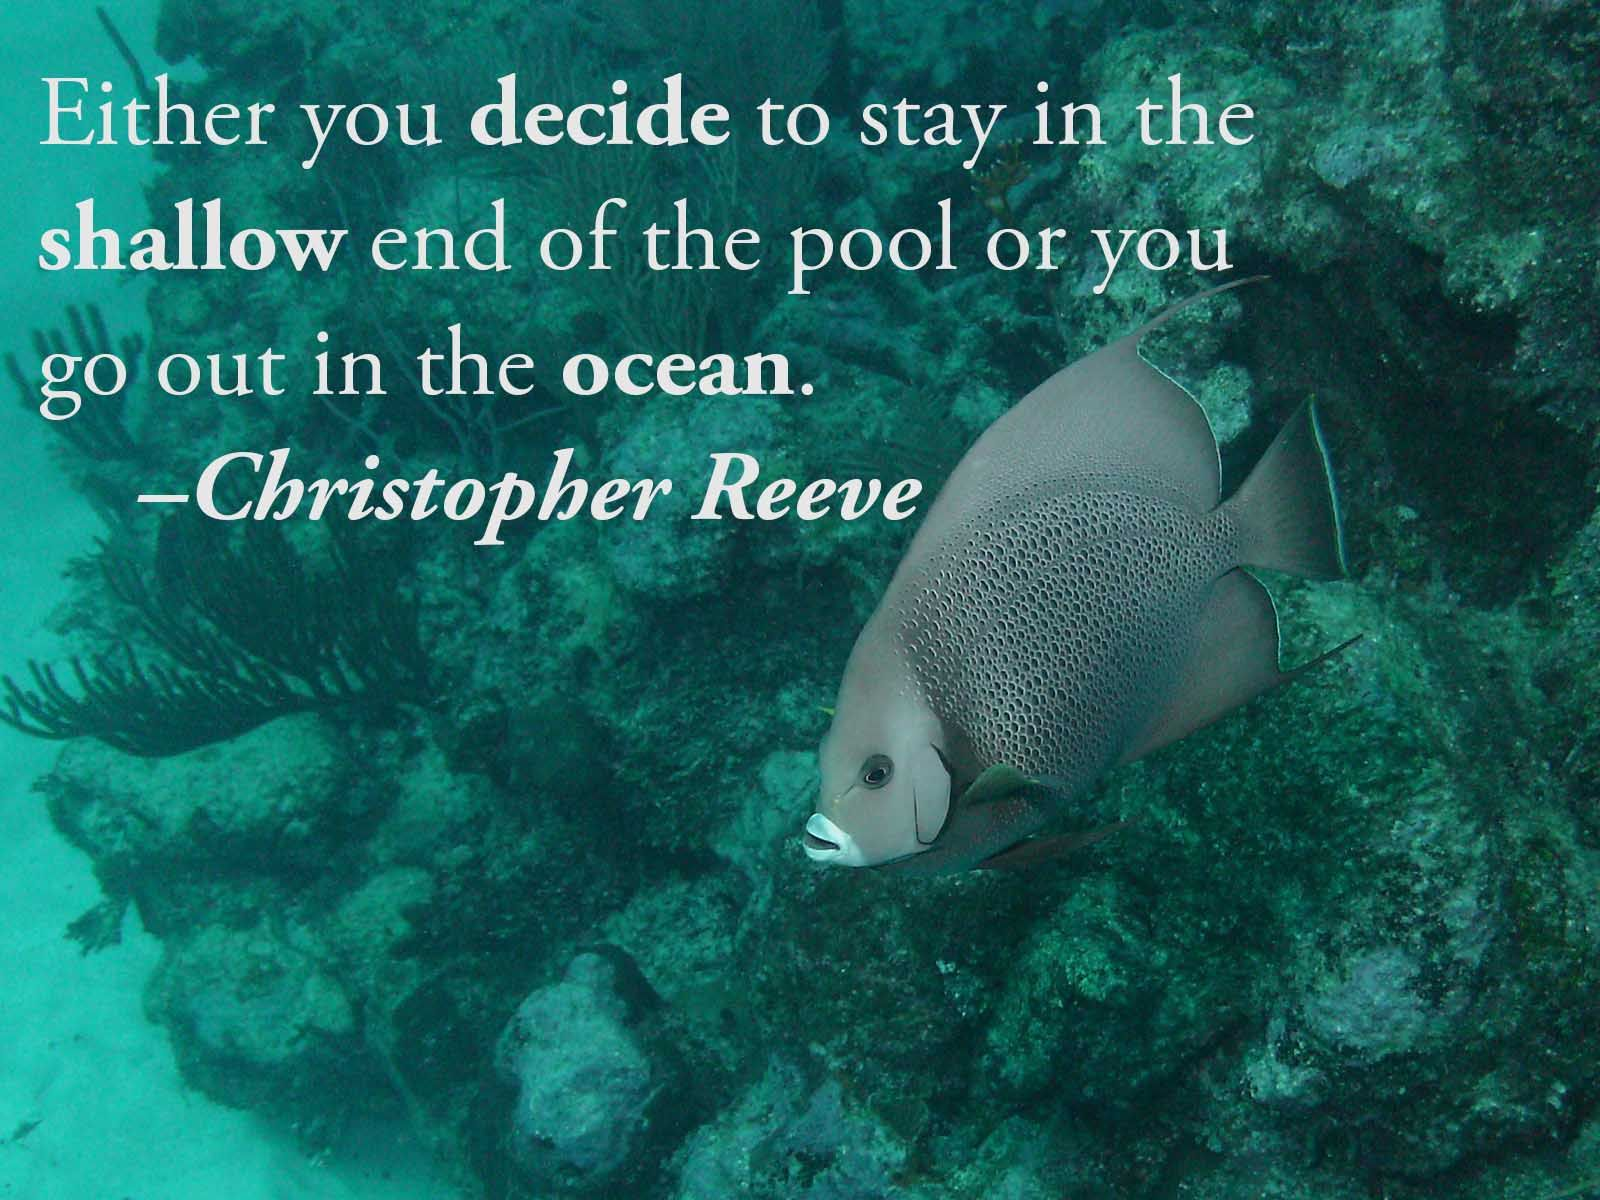 Fish aquarium quotes - Either You Decide To Stay In The Shallow End Of The Pool Or You Go Out